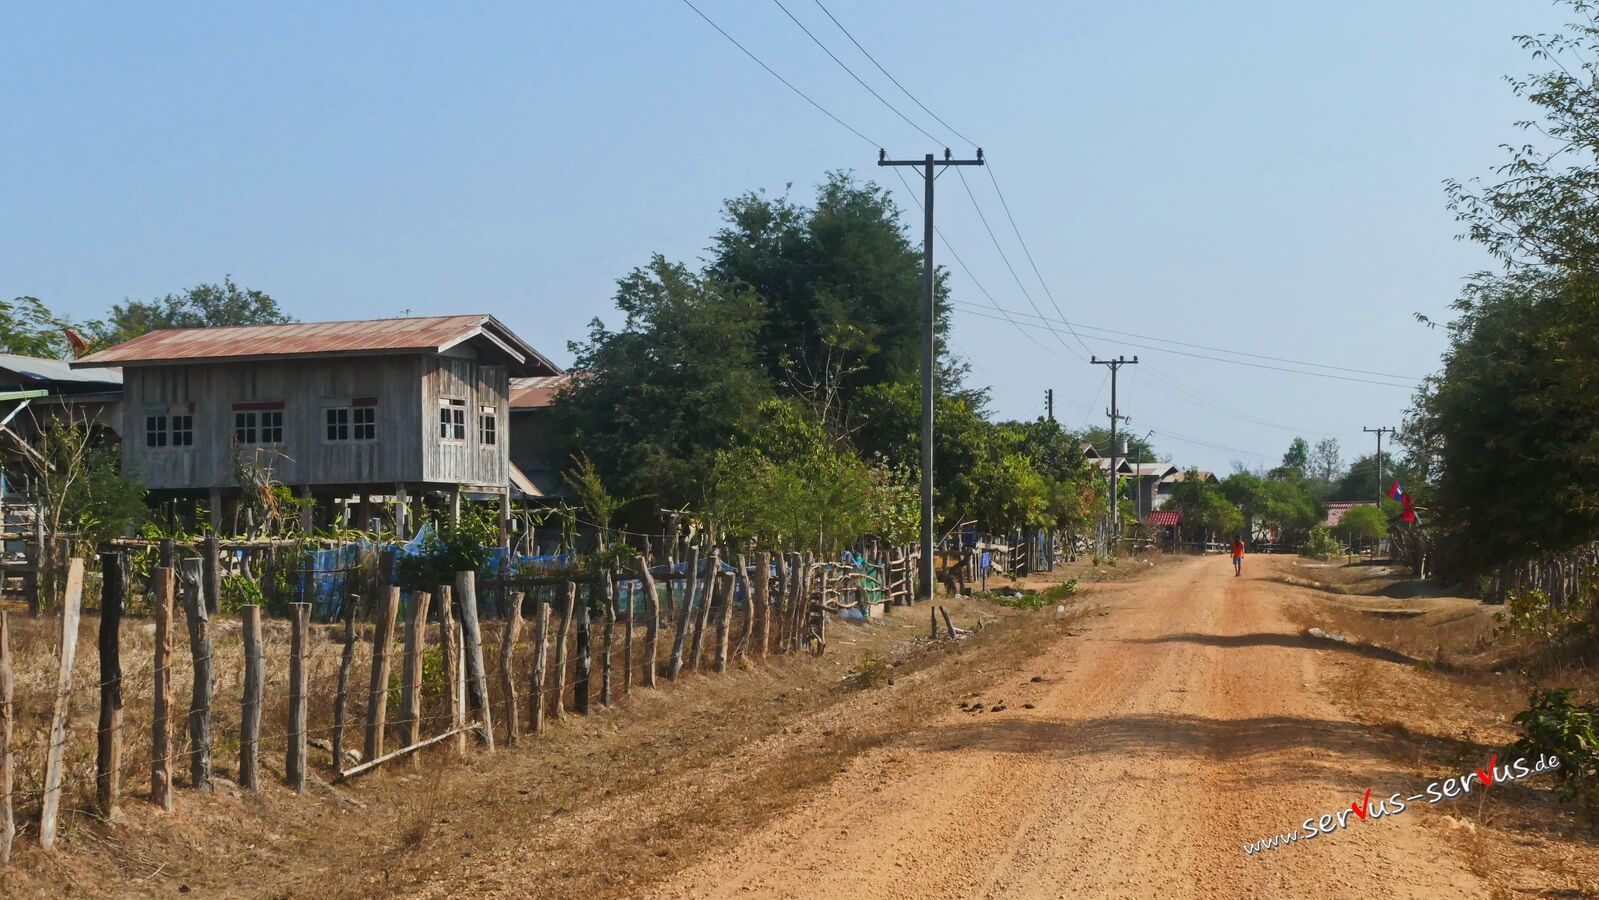 Dorf in Laos bei Savannakhet